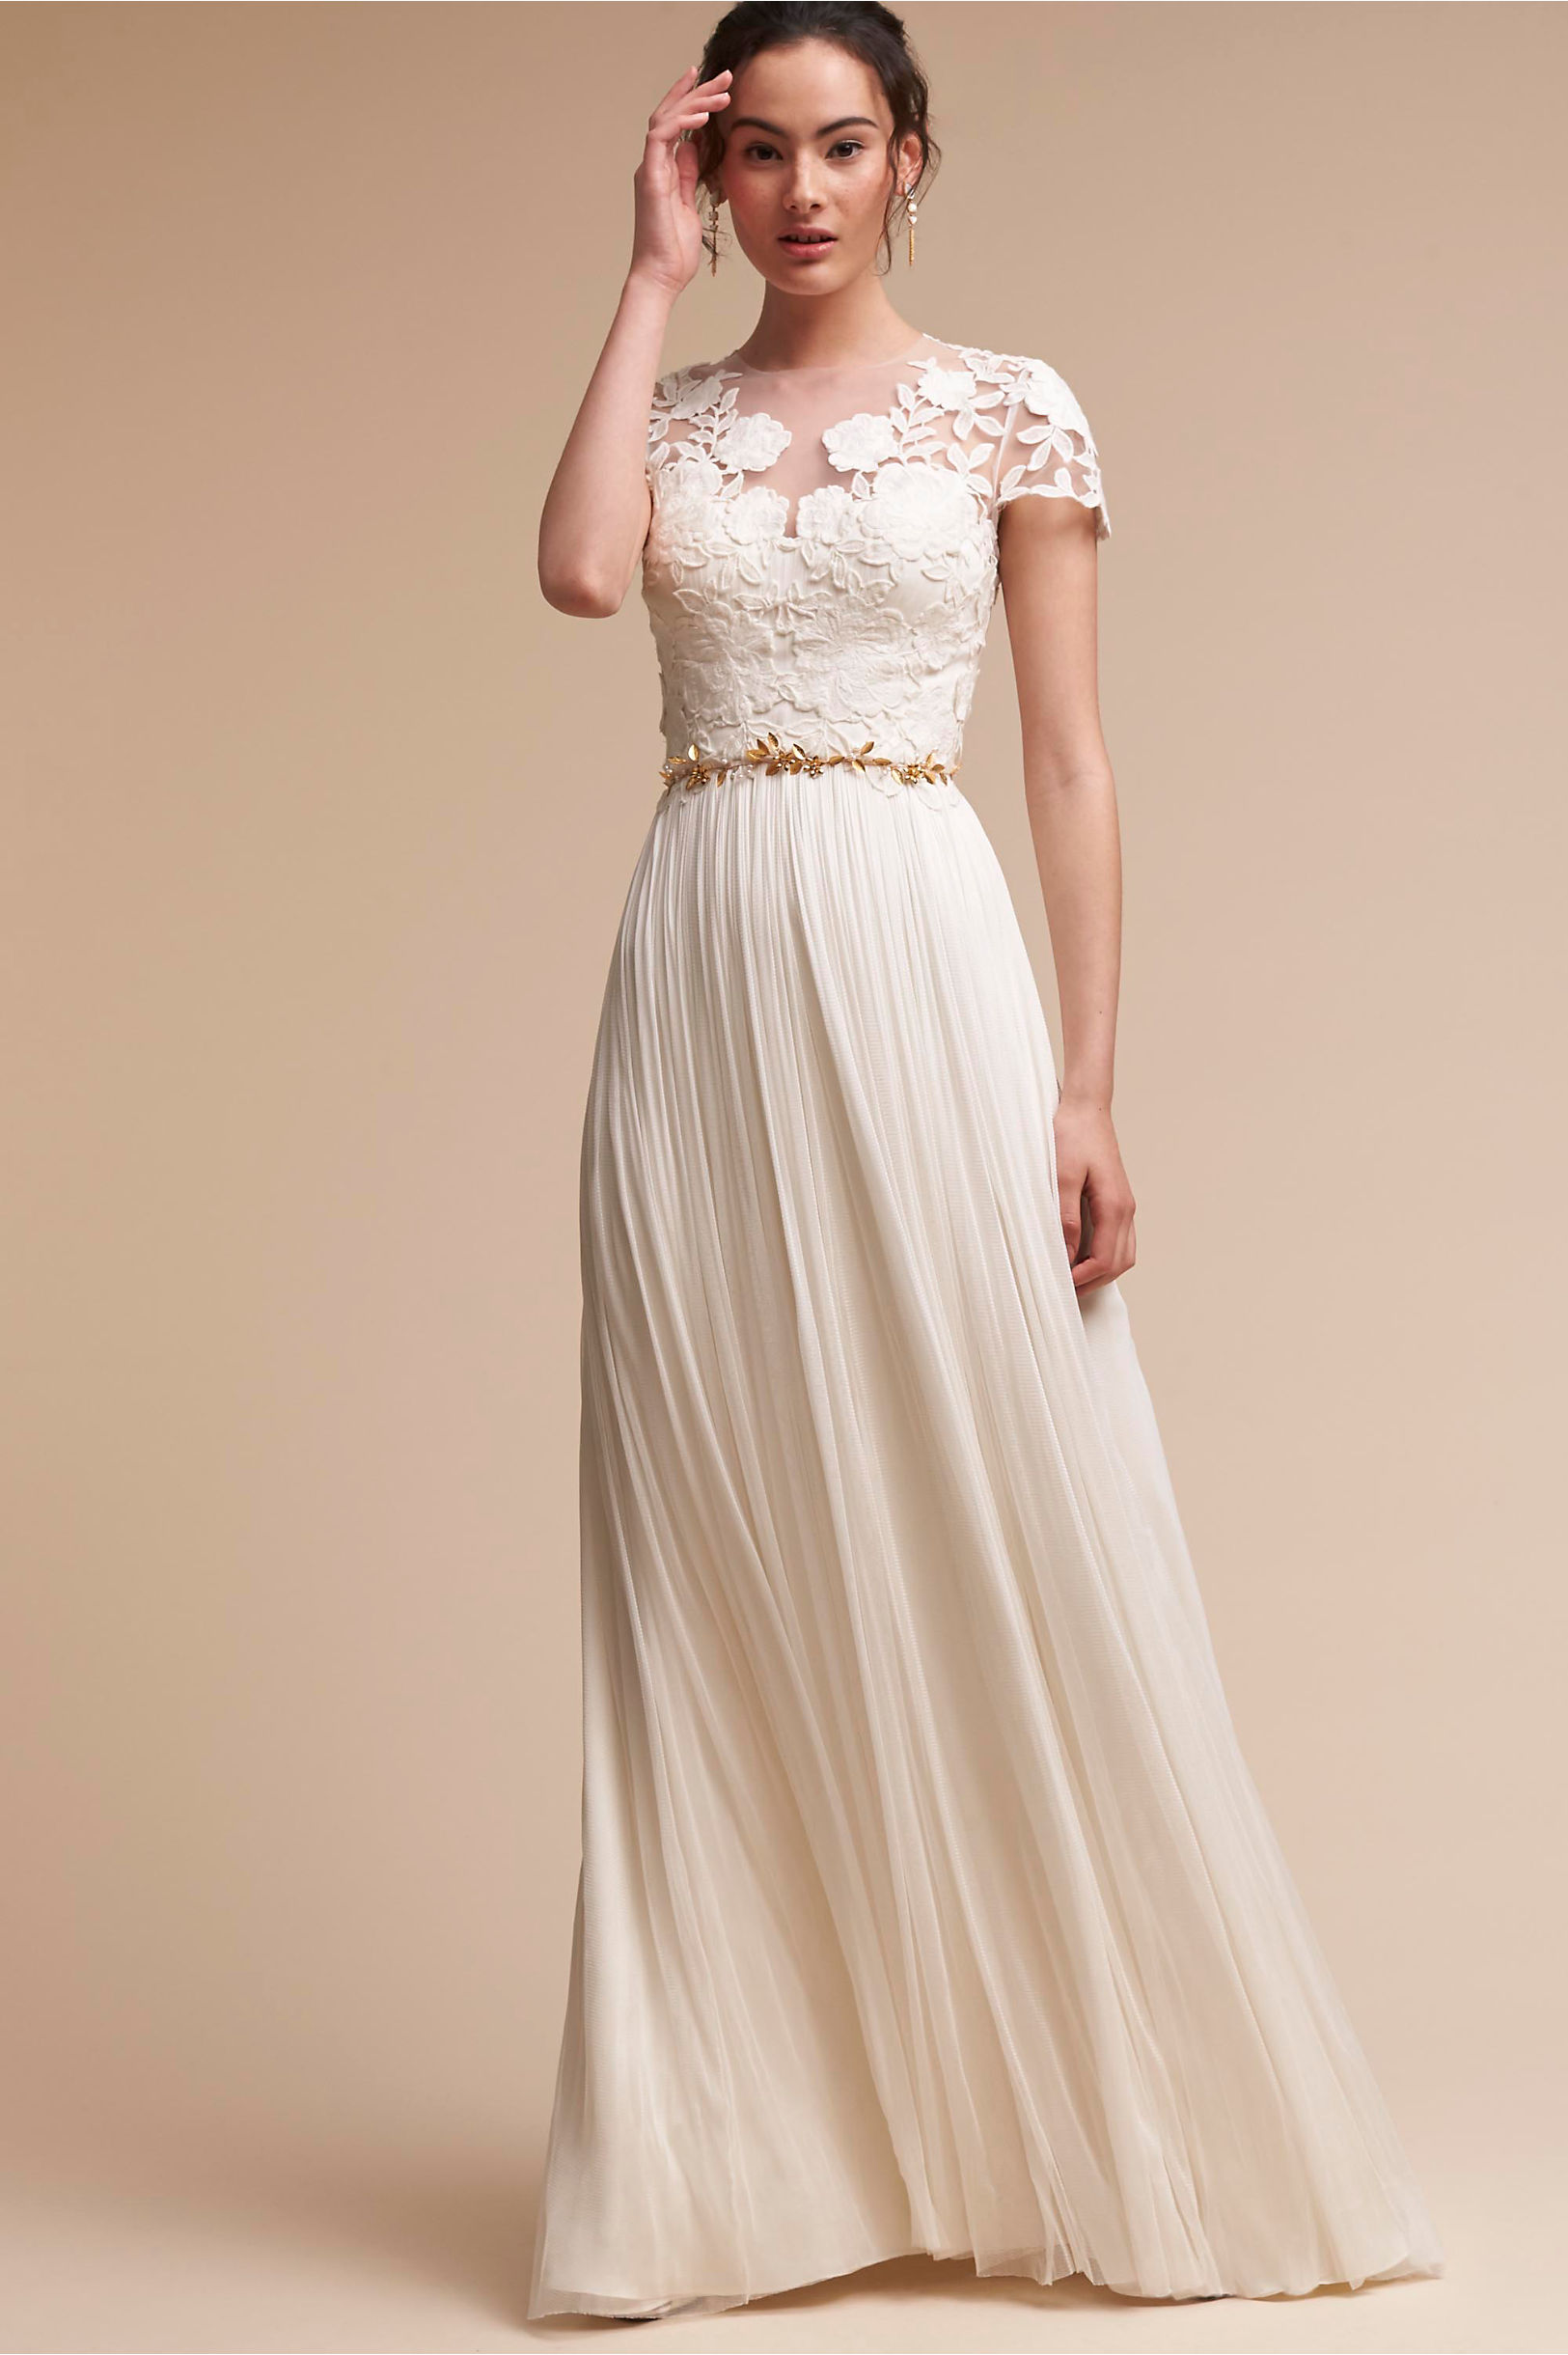 Wedding Dresses Under 1500 : Prettyperfect wedding dresses under aisle perfect